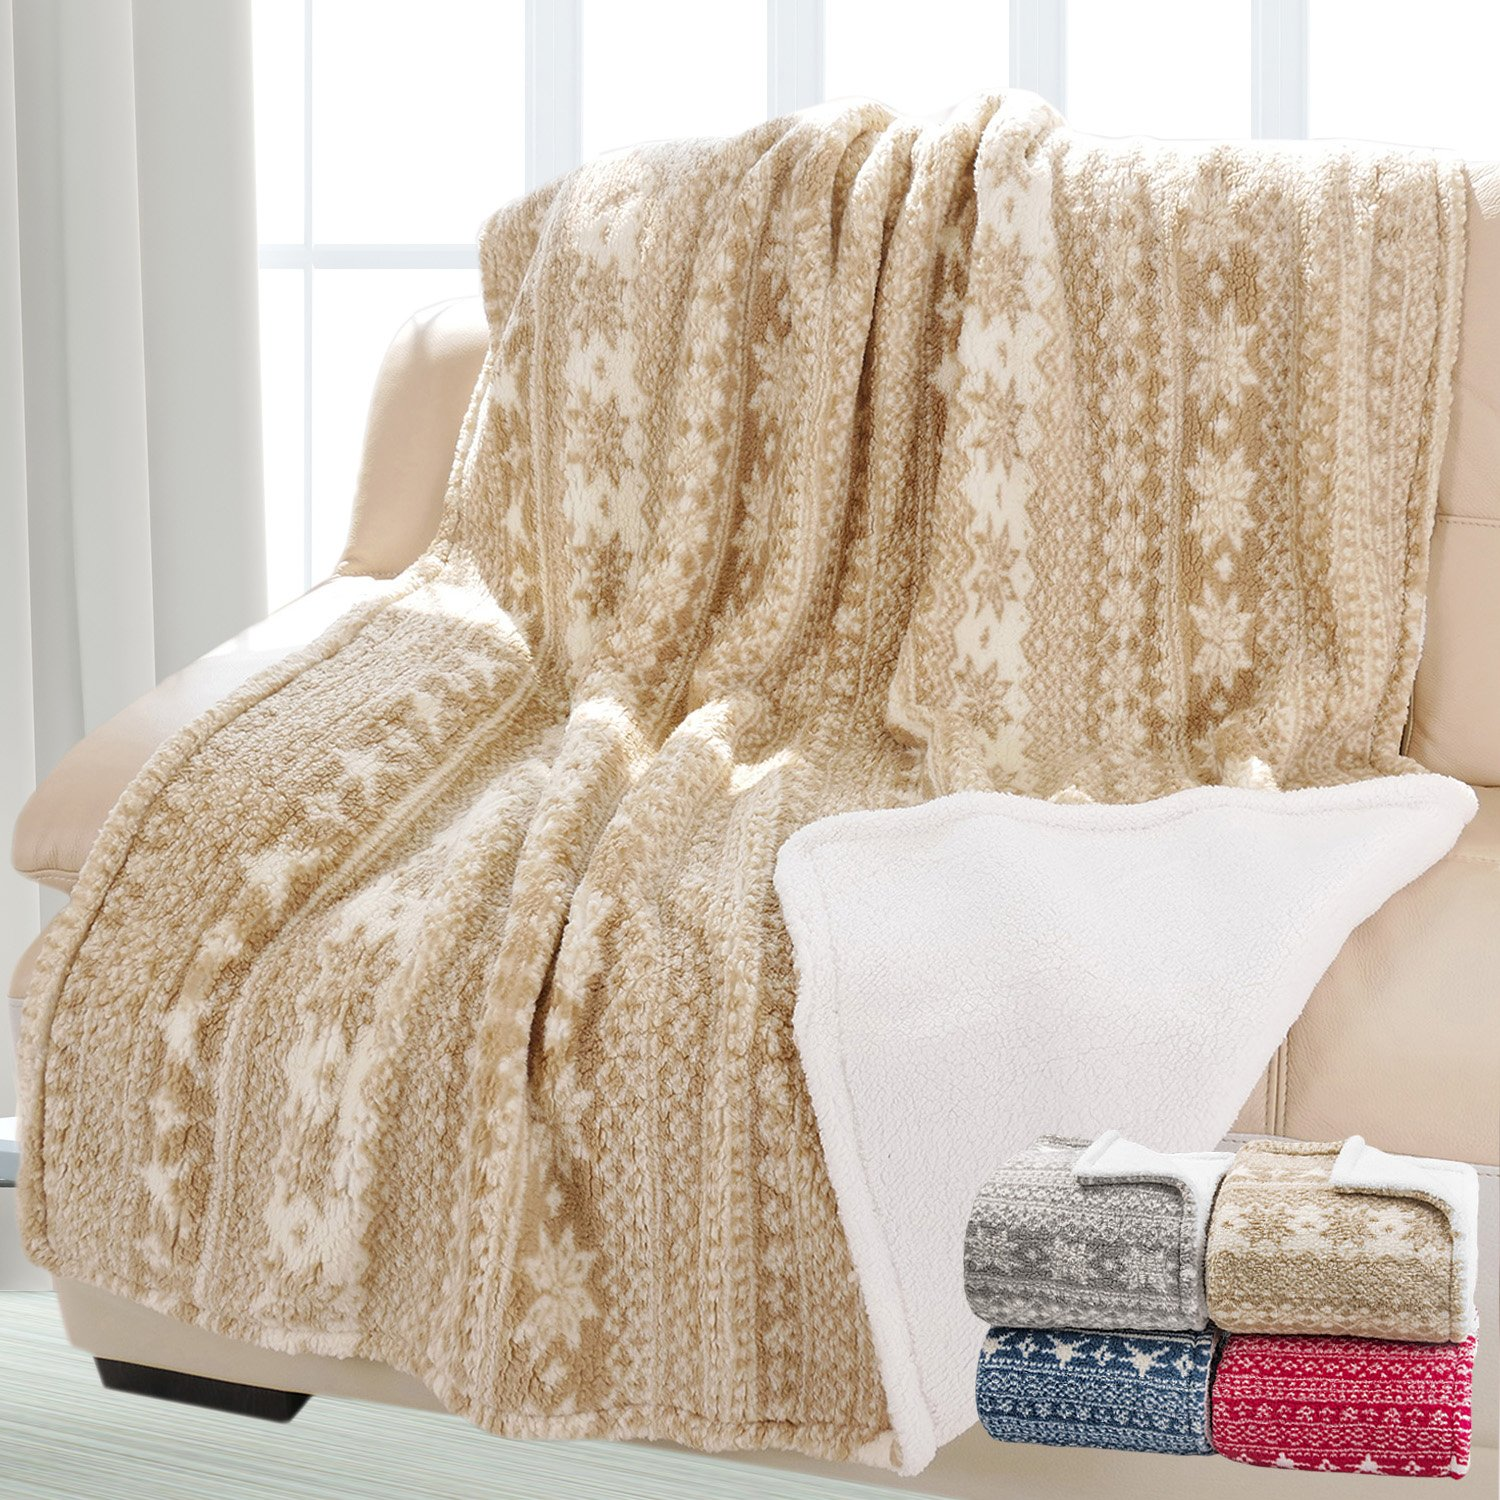 Snowflake Theme Sherpa Throw Blanket, Luxury Reversible Cozy Fleece Blanket, Warm Super Soft Comfort Caring Gift for Children and Adult, 155cm x 127cm, Beige by Catalonia